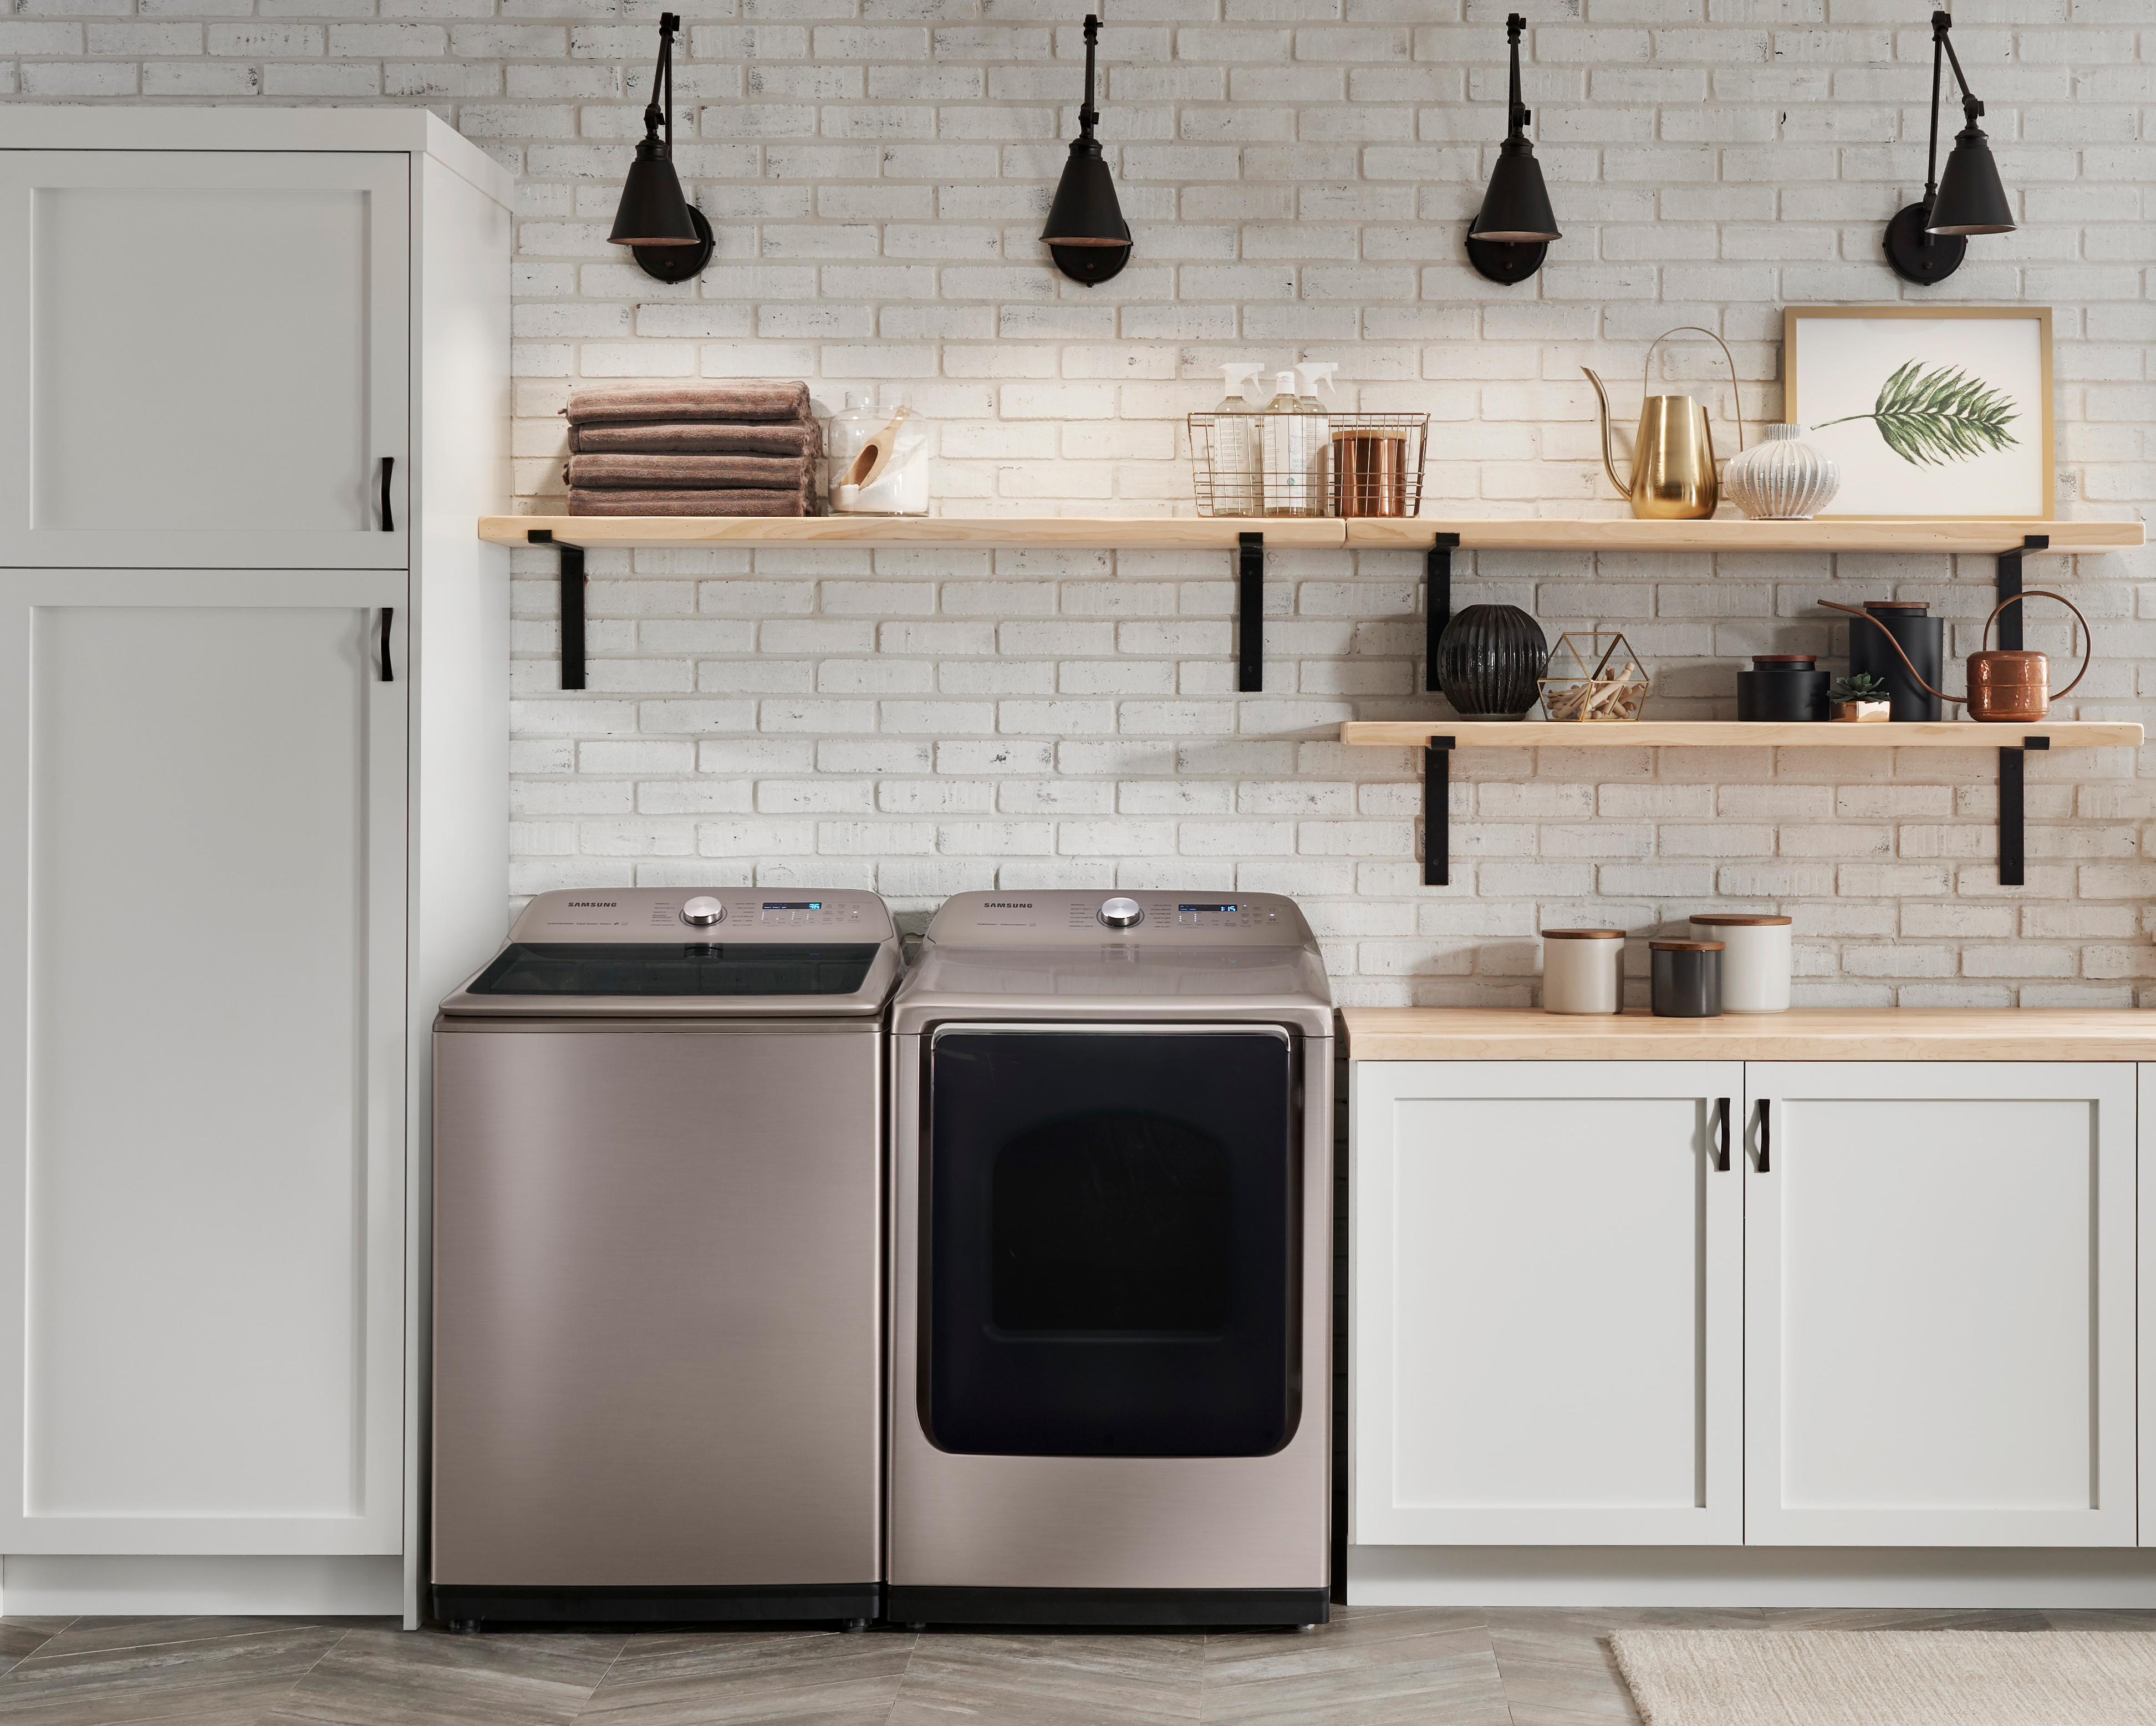 Samsung Top Load Washer (WA54R7600) and dryer with Champagne finish